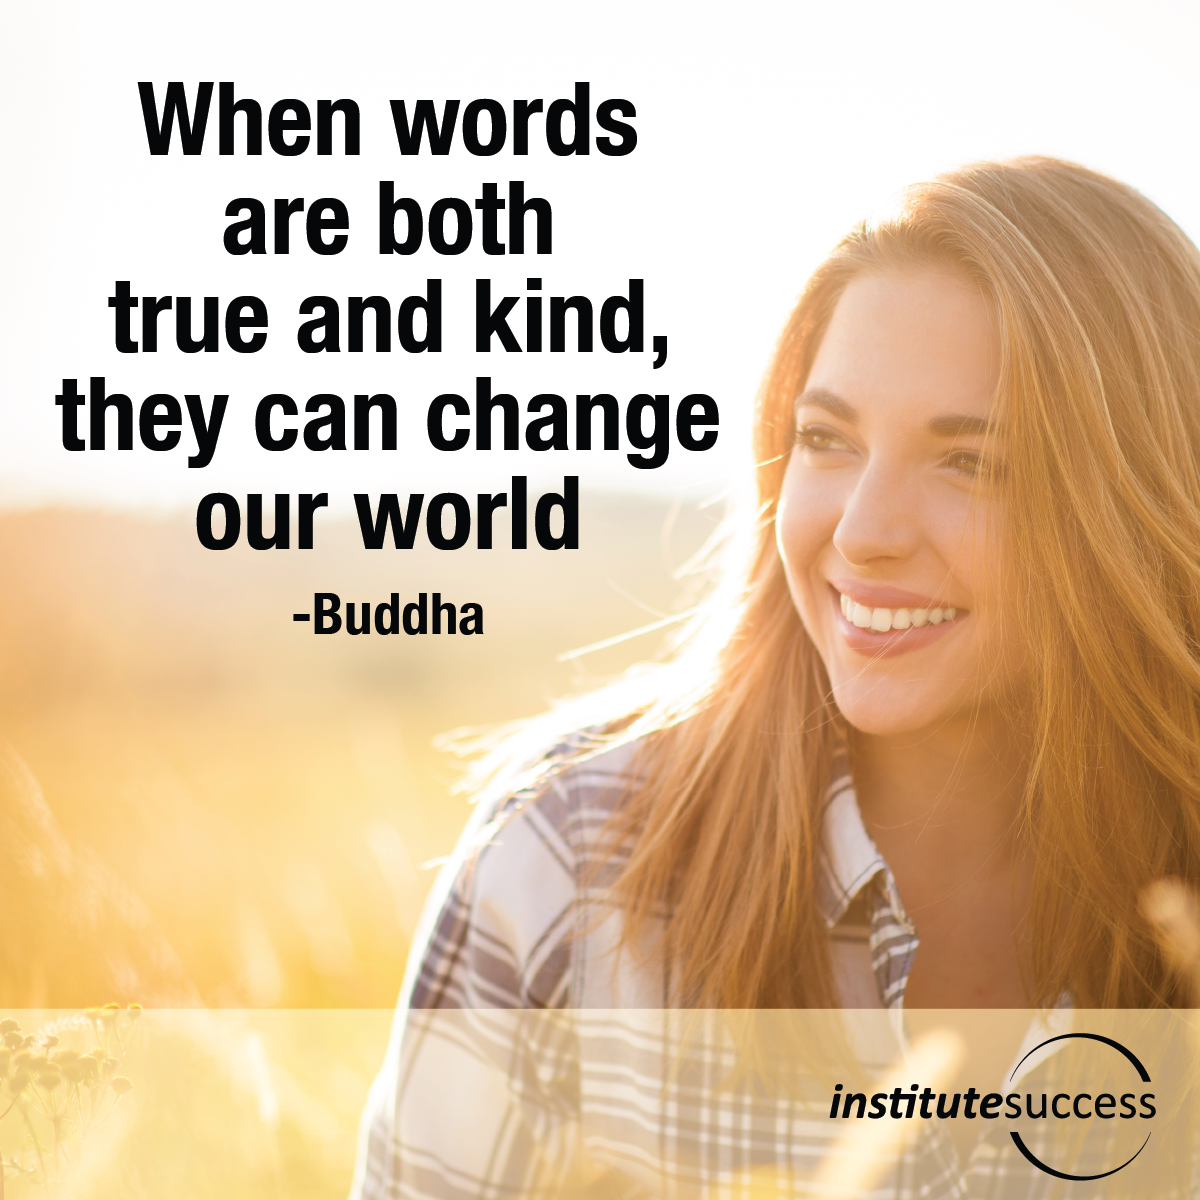 When words are both true and kind, they can change our world – Buddha